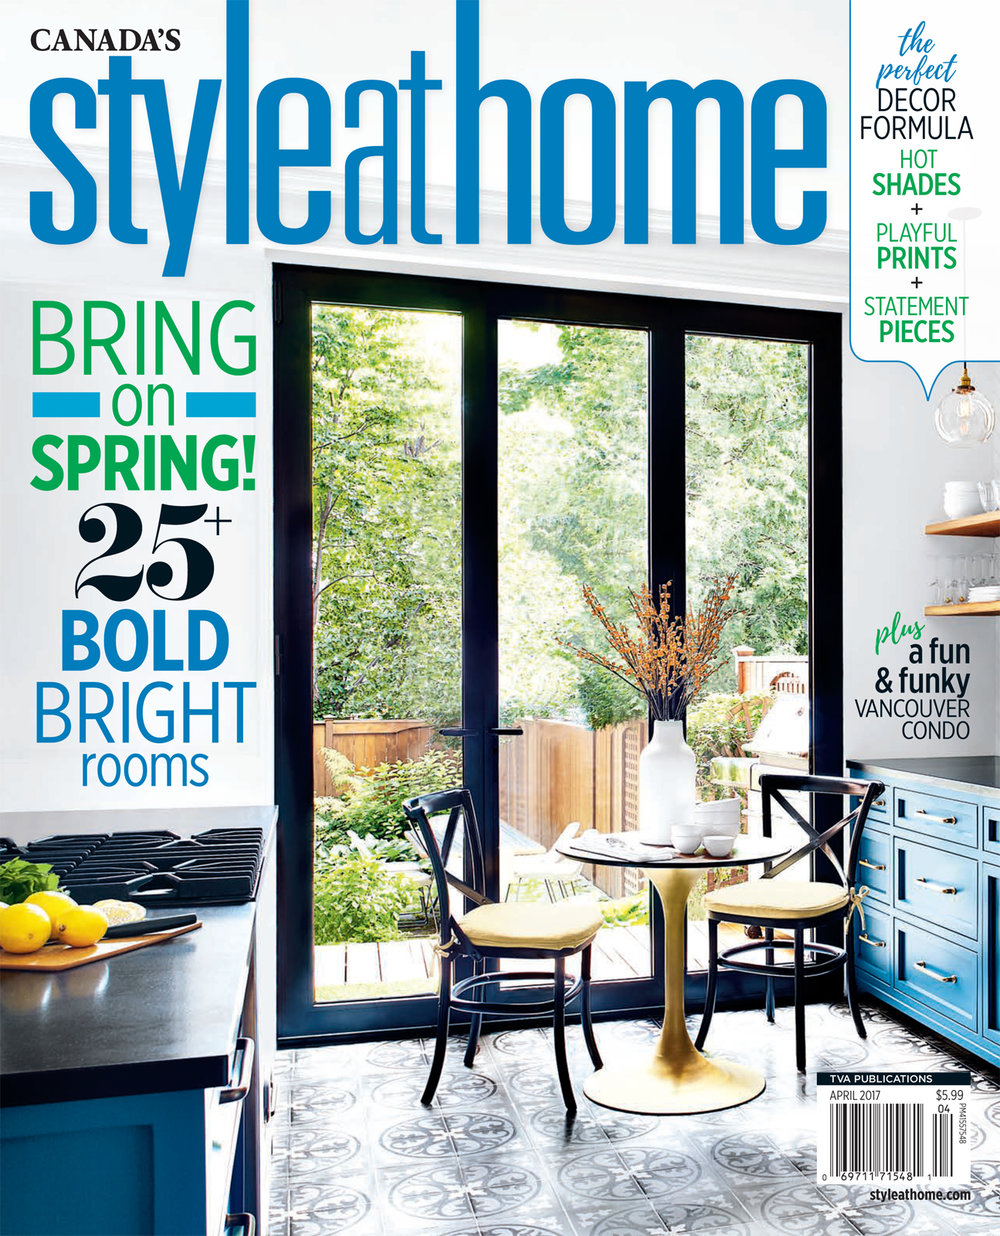 CanadaStyleatHomeApril 2017_Cover.jpg